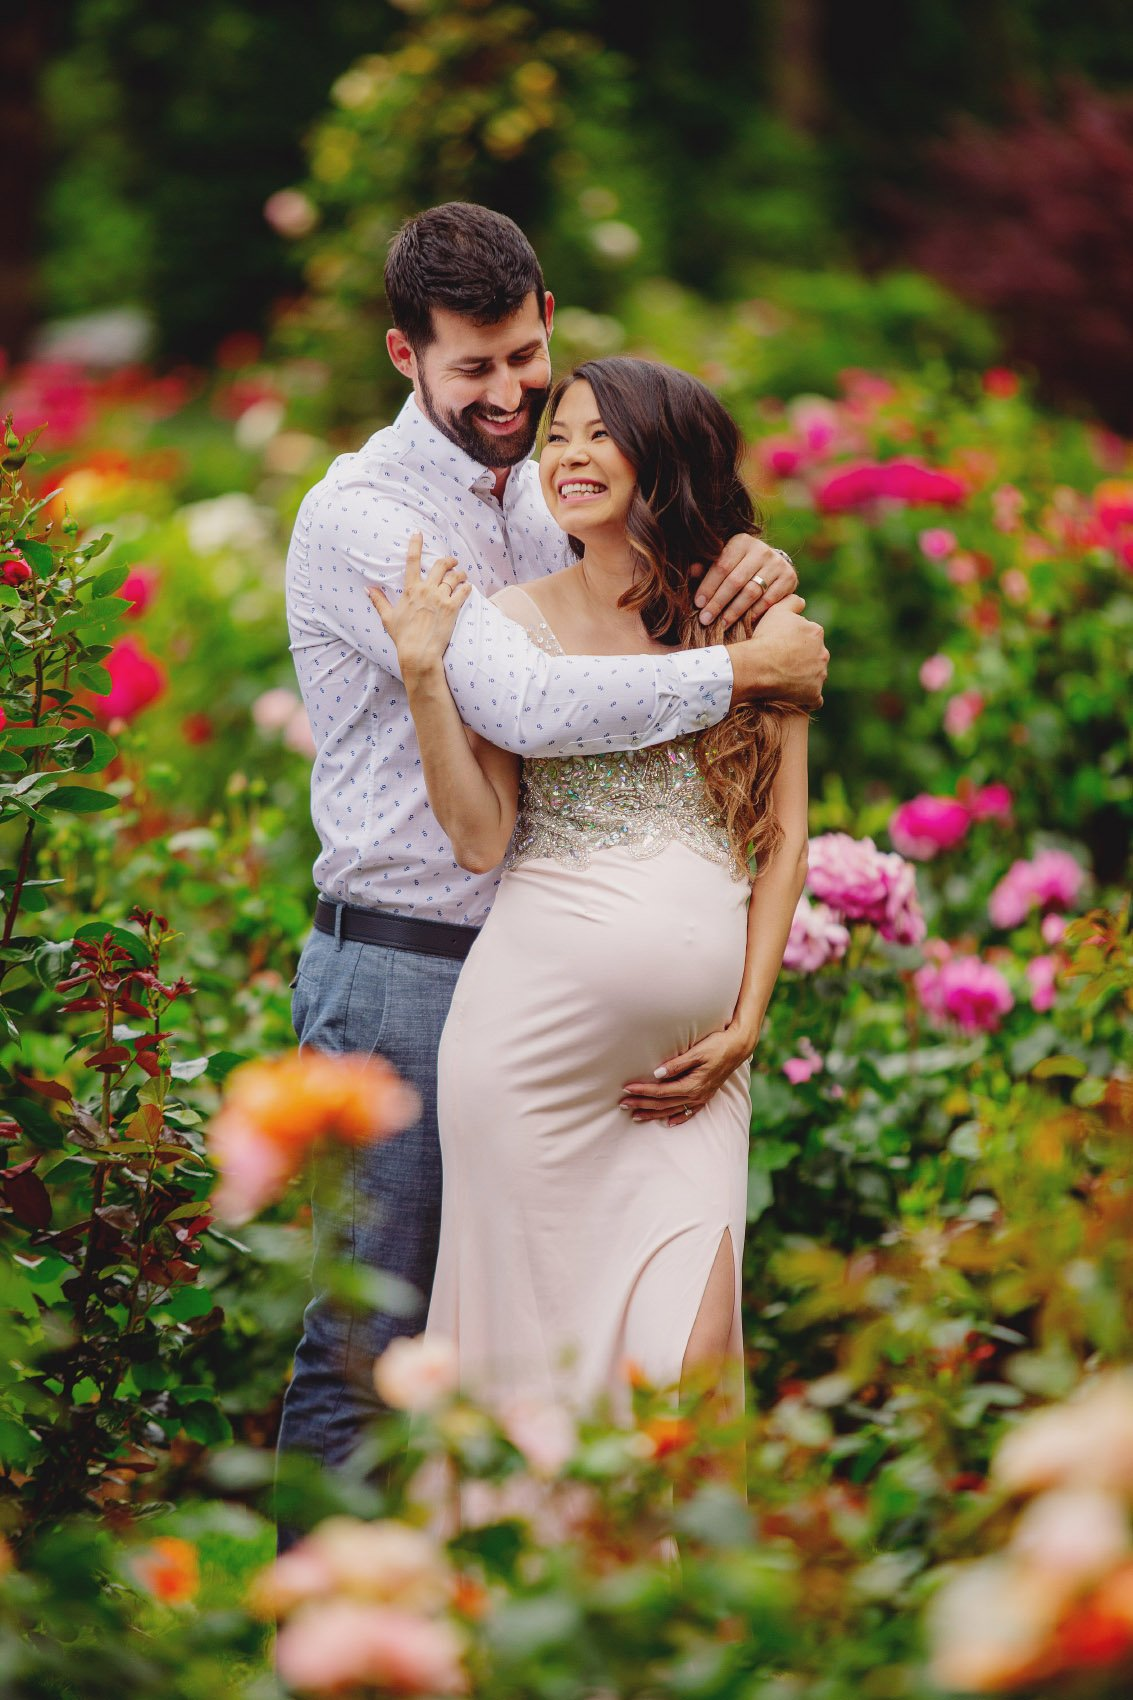 Portland family maternity photography by liz wade